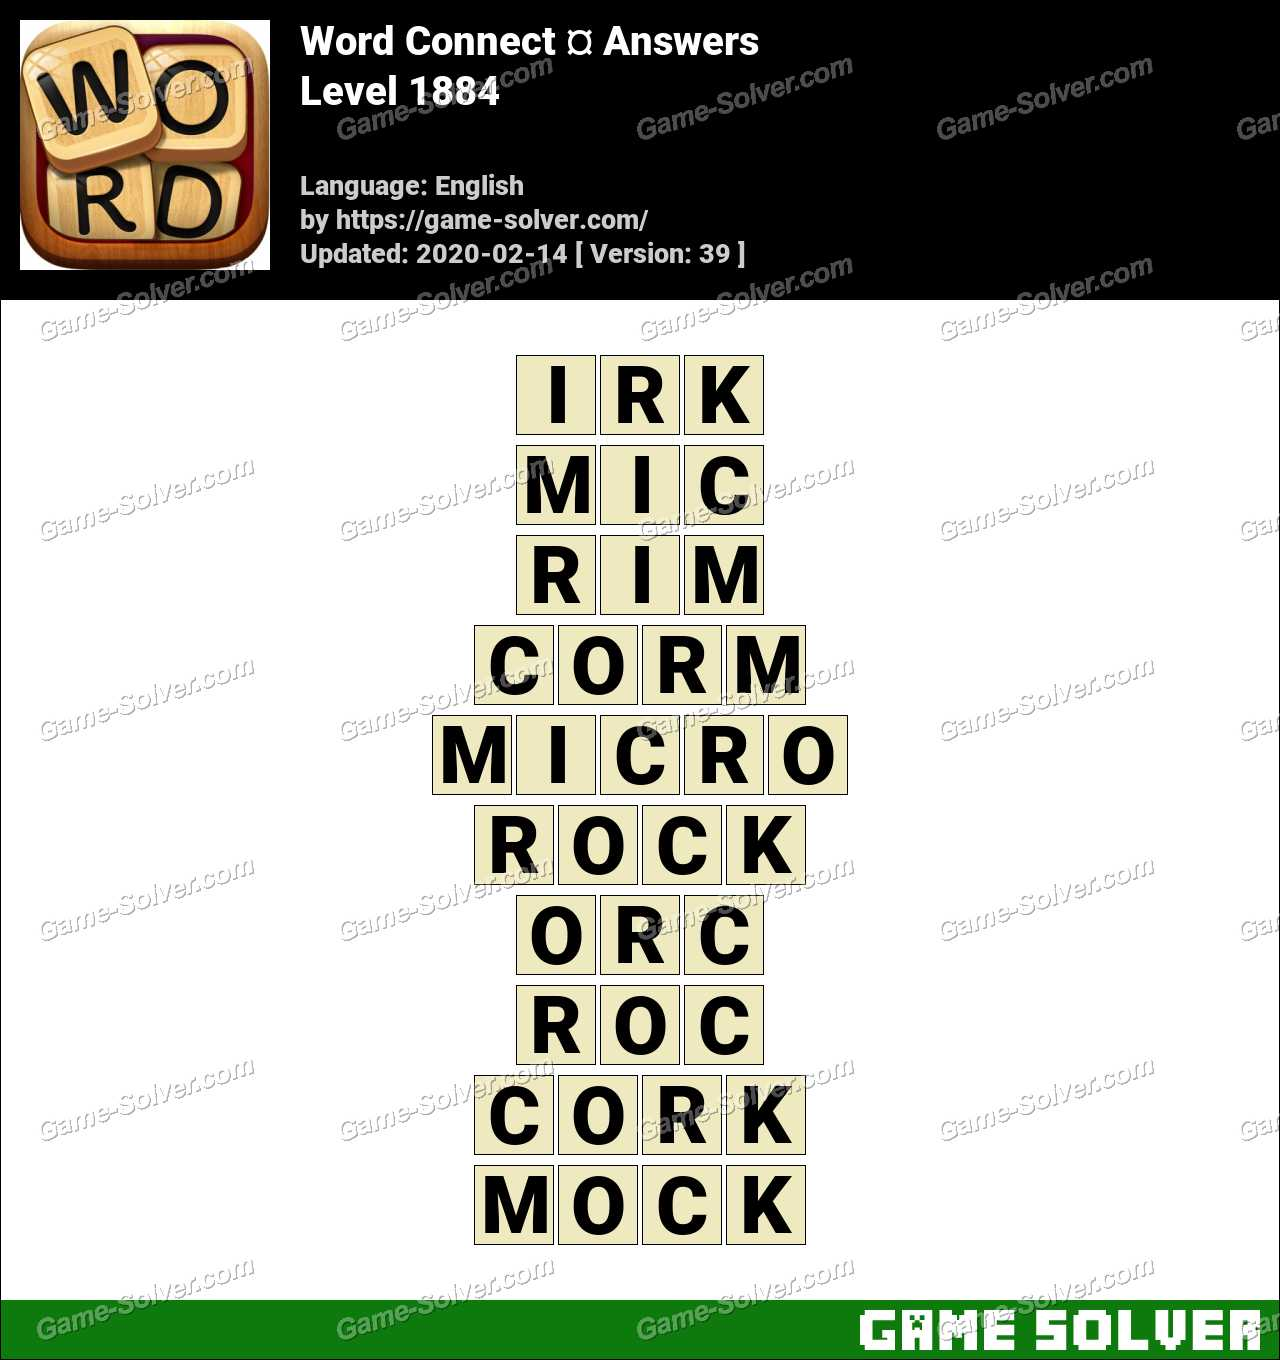 Word Connect Level 1884 Answers